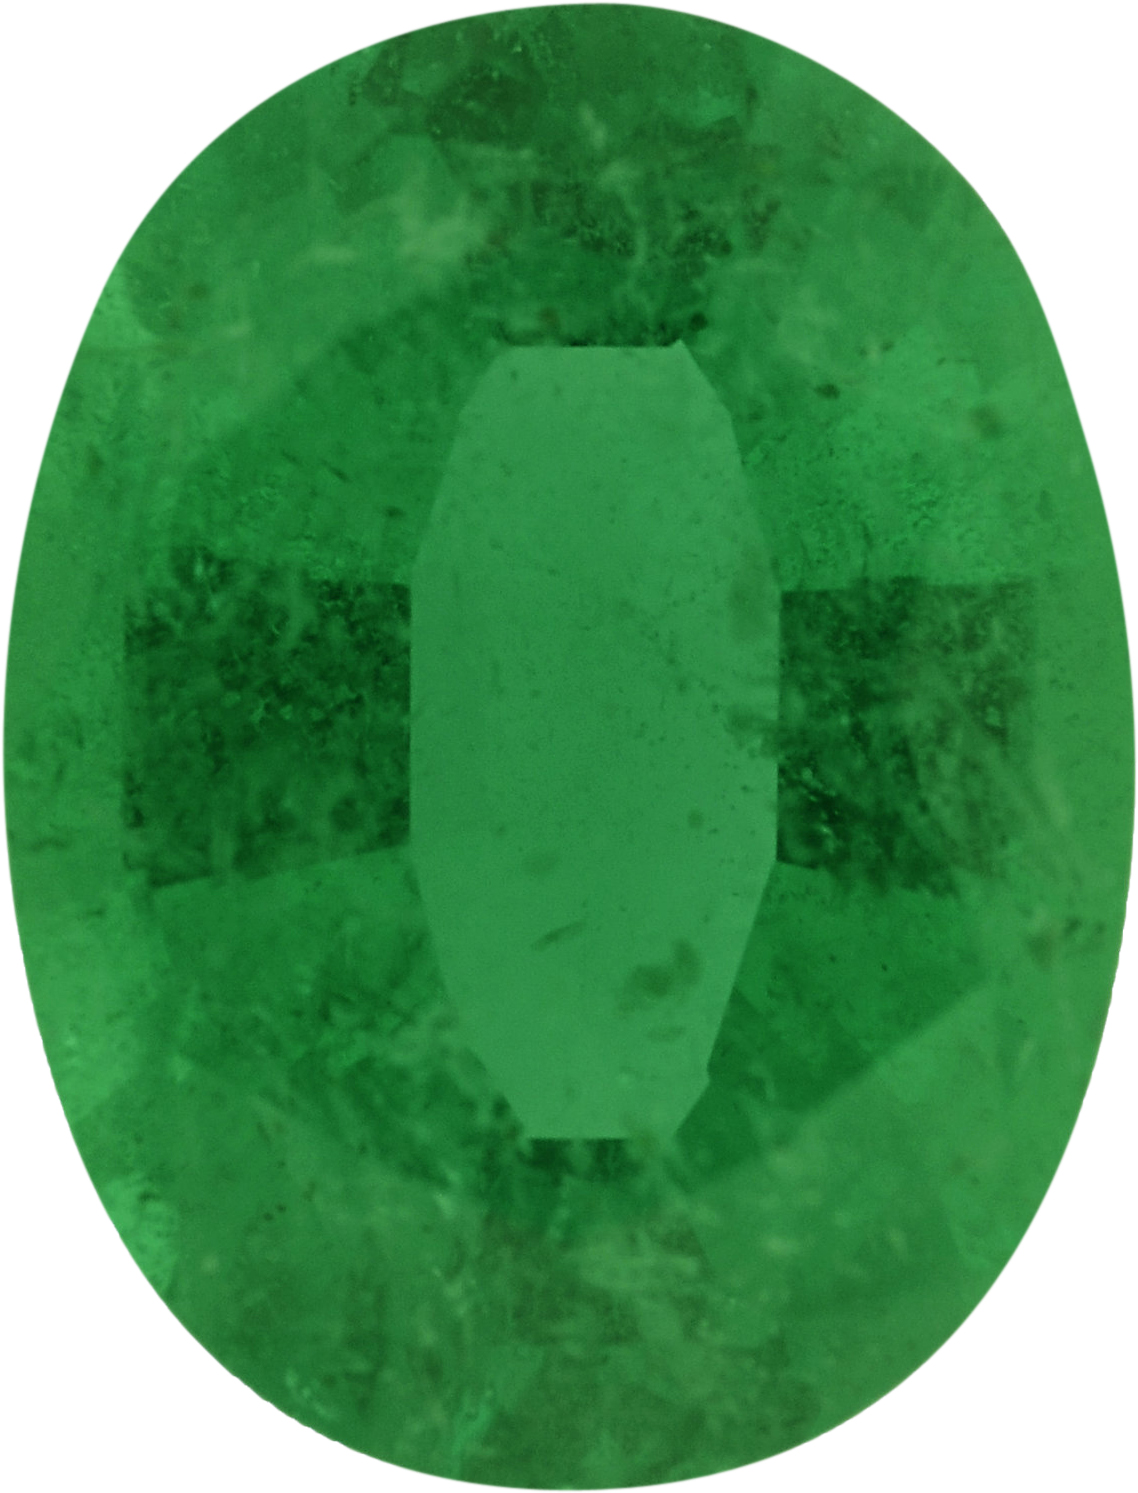 8.17 x 6.2 mm, Emerald Loose Gemstone in Oval Cut, 1.21 carats